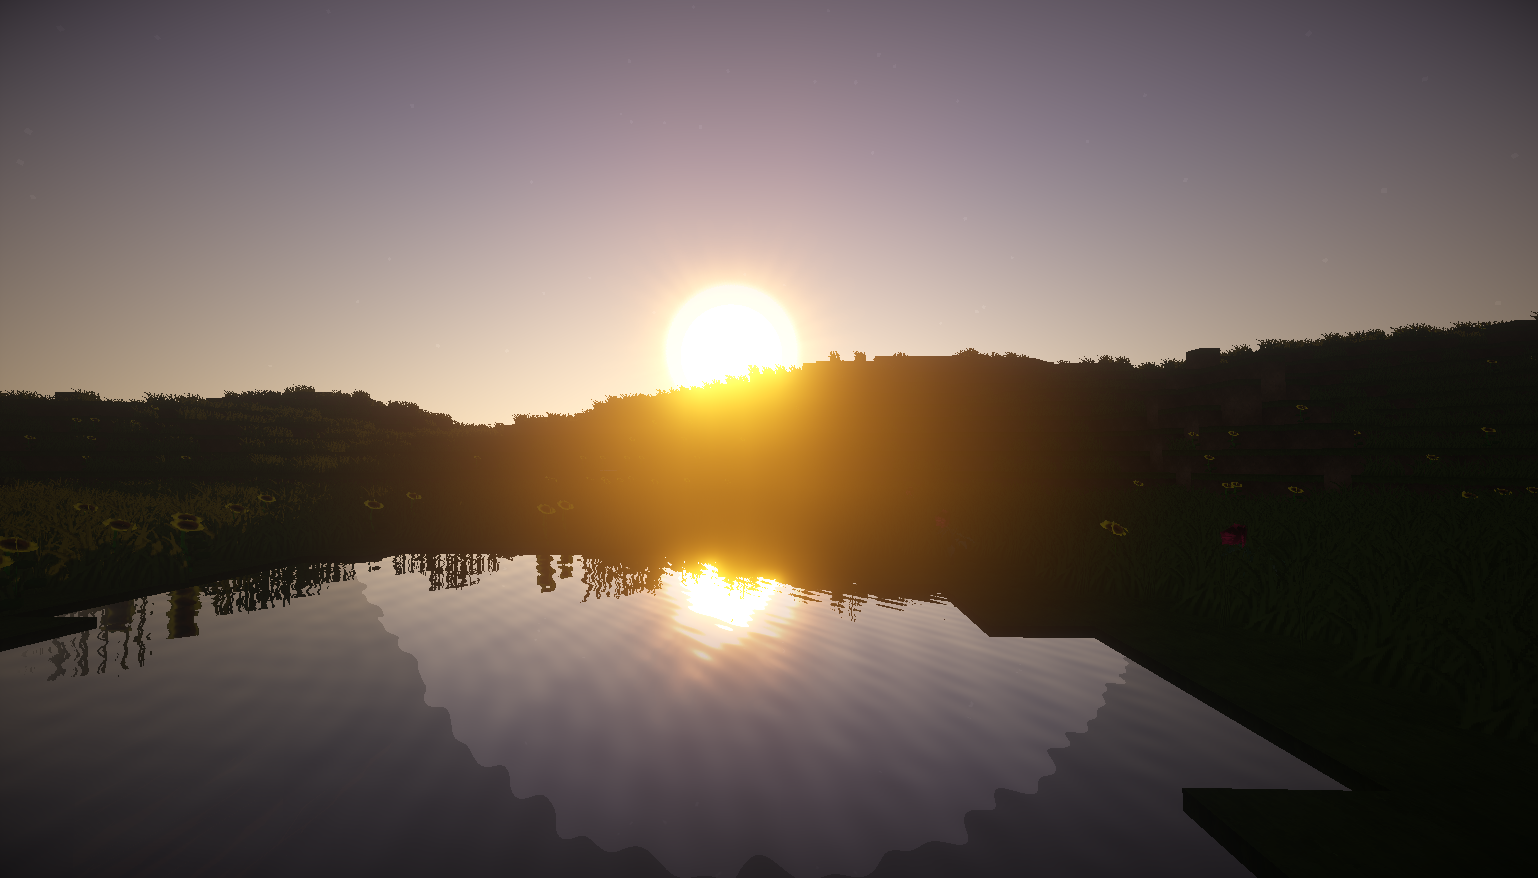 Sunset with Shaders Mod